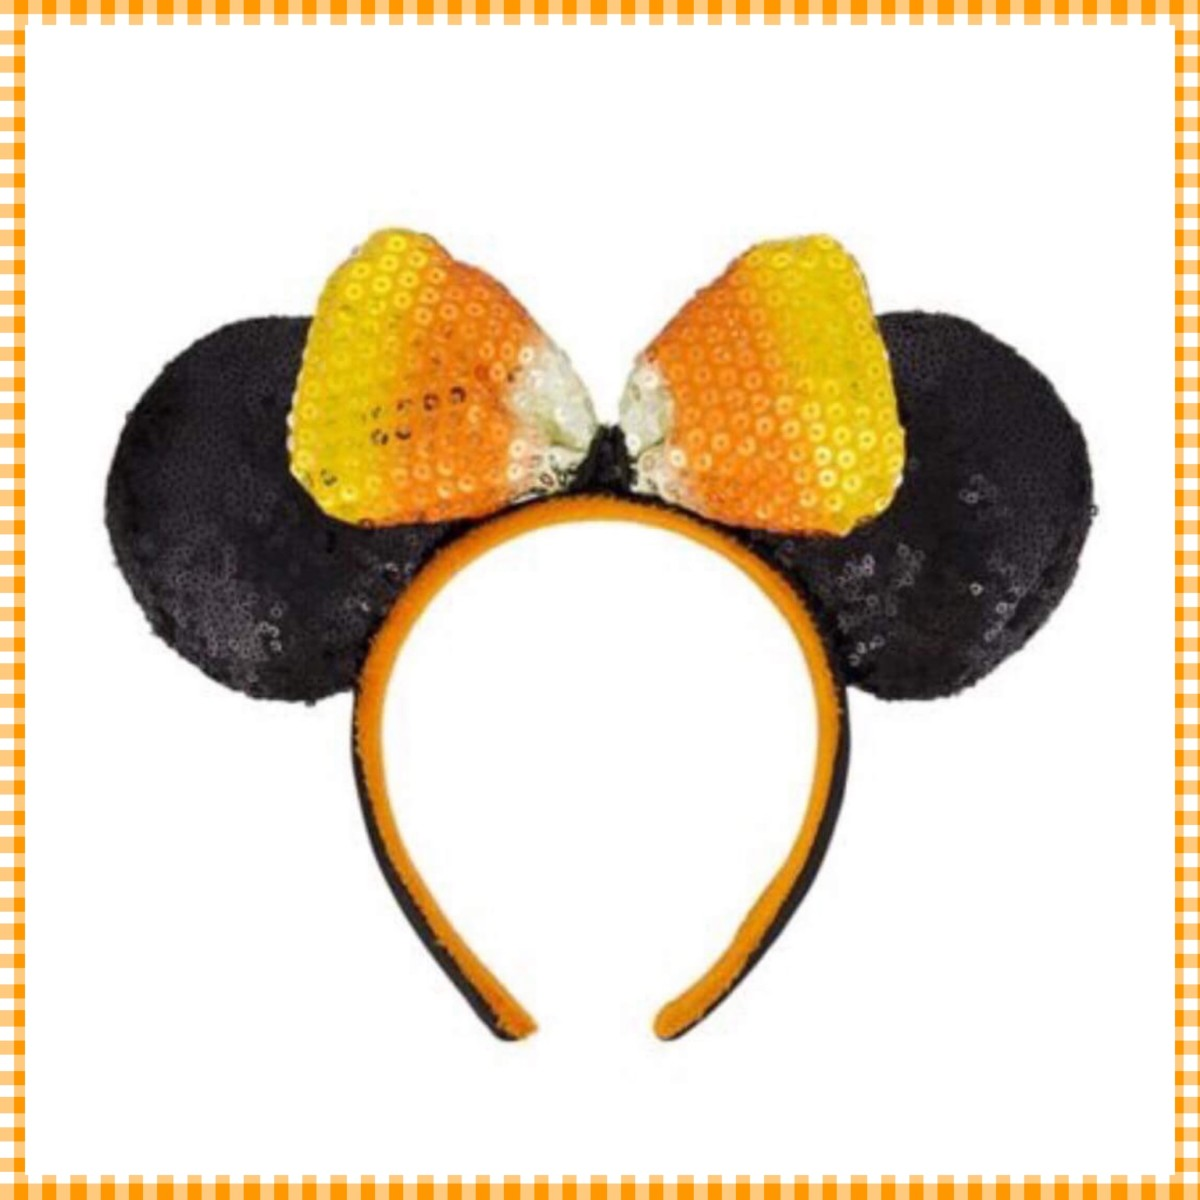 New Halloween and Christmas Ears Coming Soon! #DisneyStyle 7